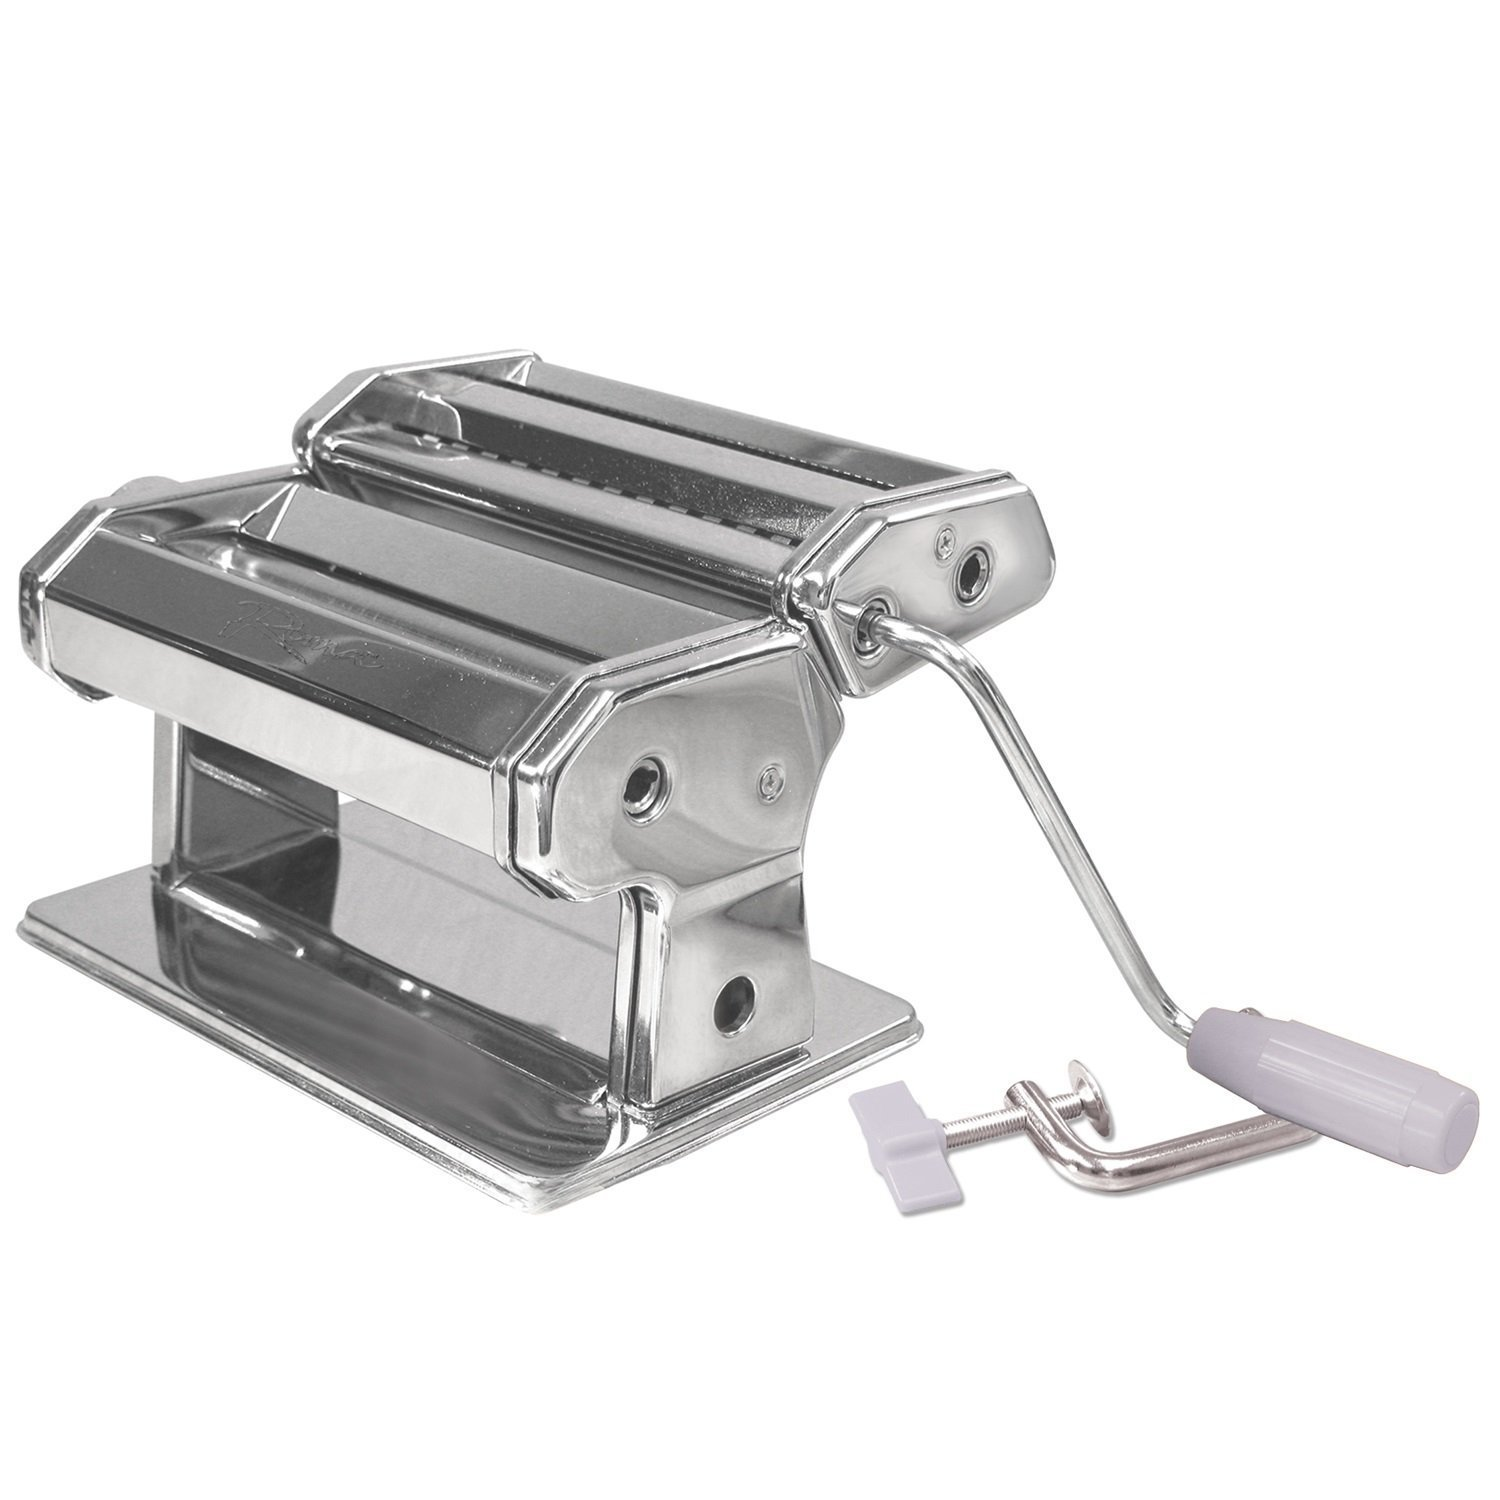 Roma Traditional Style Pasta Machine Stainless Steel